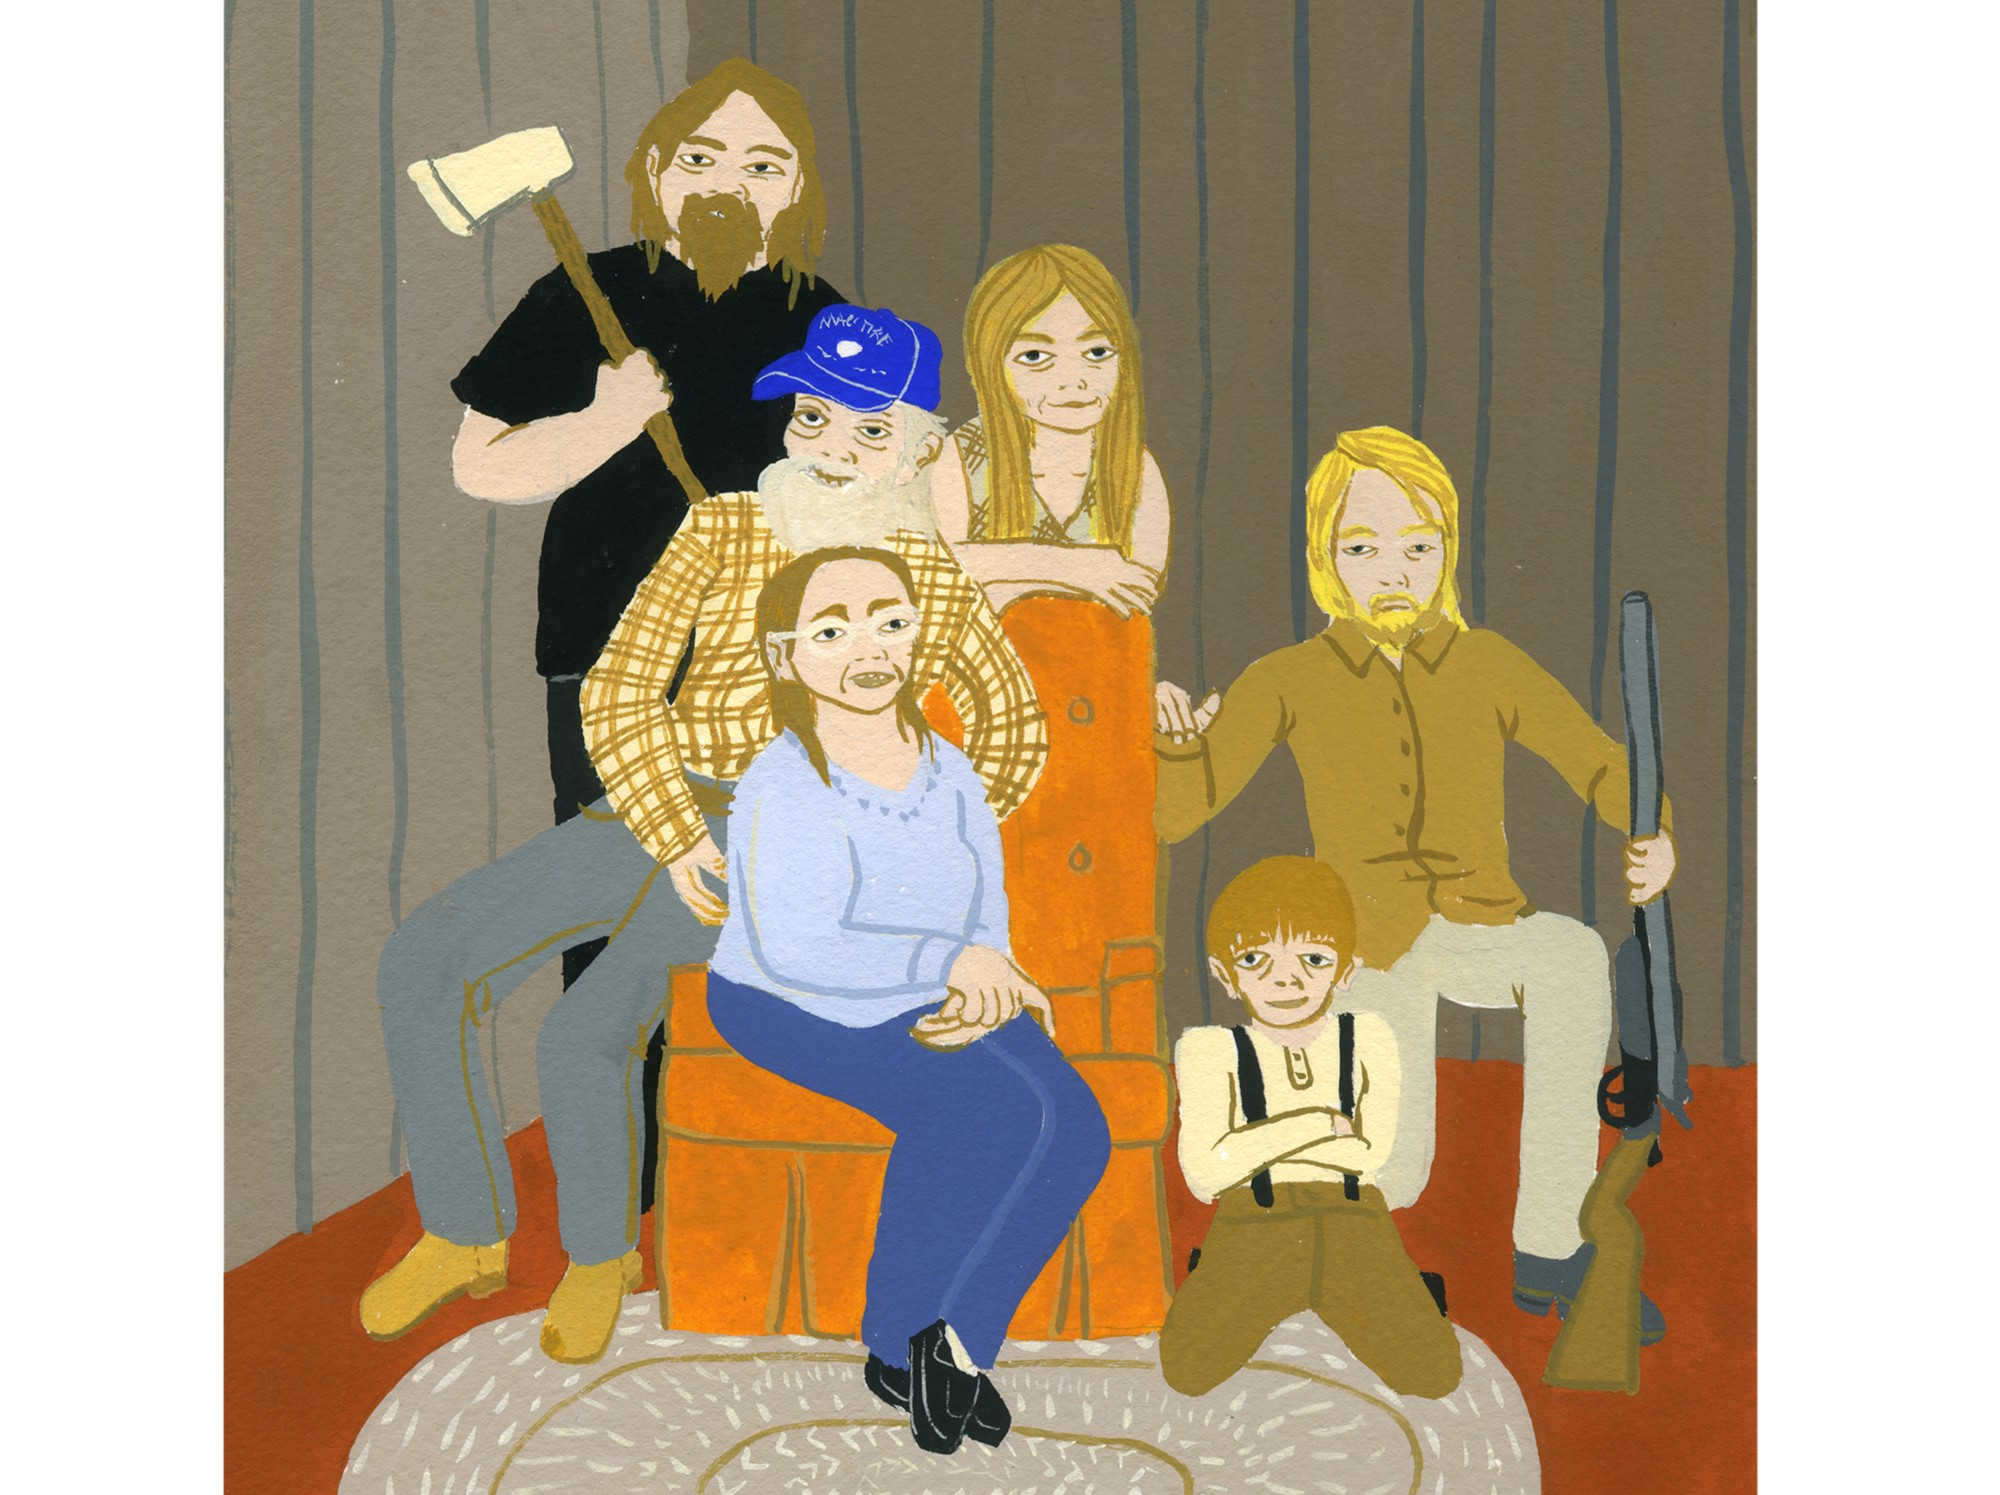 A colorful cartoon family portrait painting of mother & father surrounded by her rough lookin' kids, rifle and ax in hand.